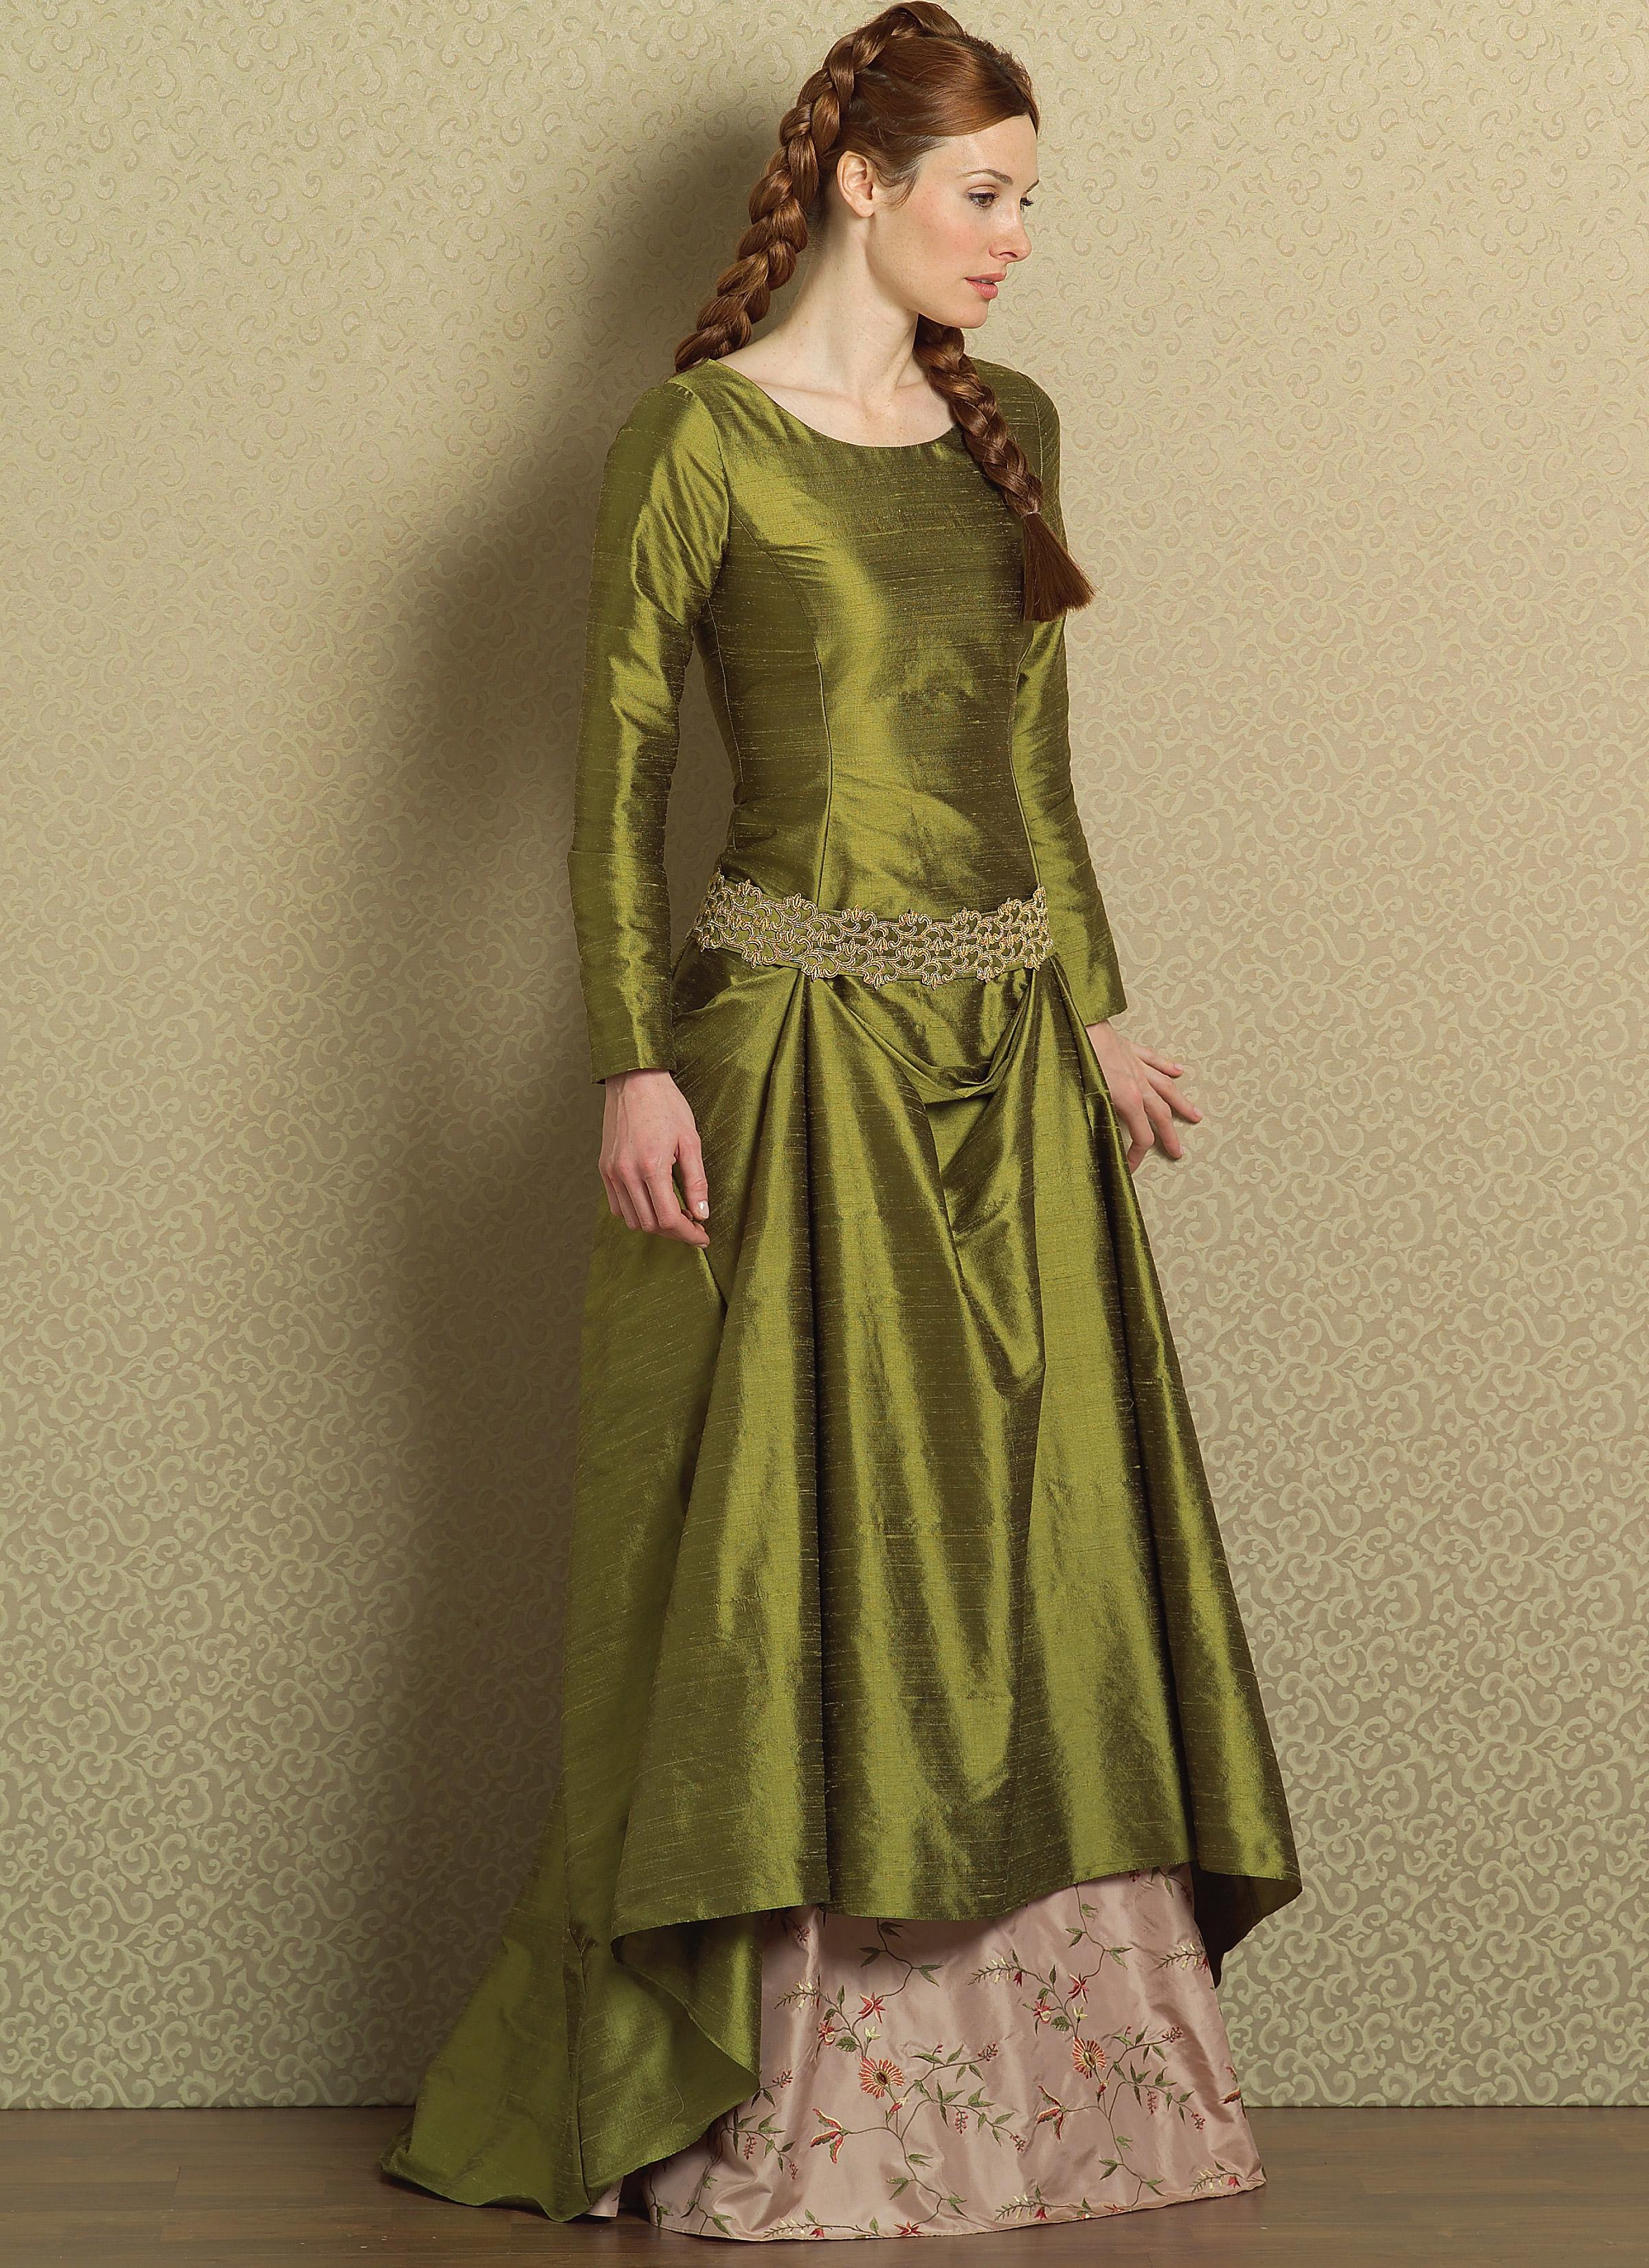 Butterick B4827 Misses' Medieval Dress and Belt